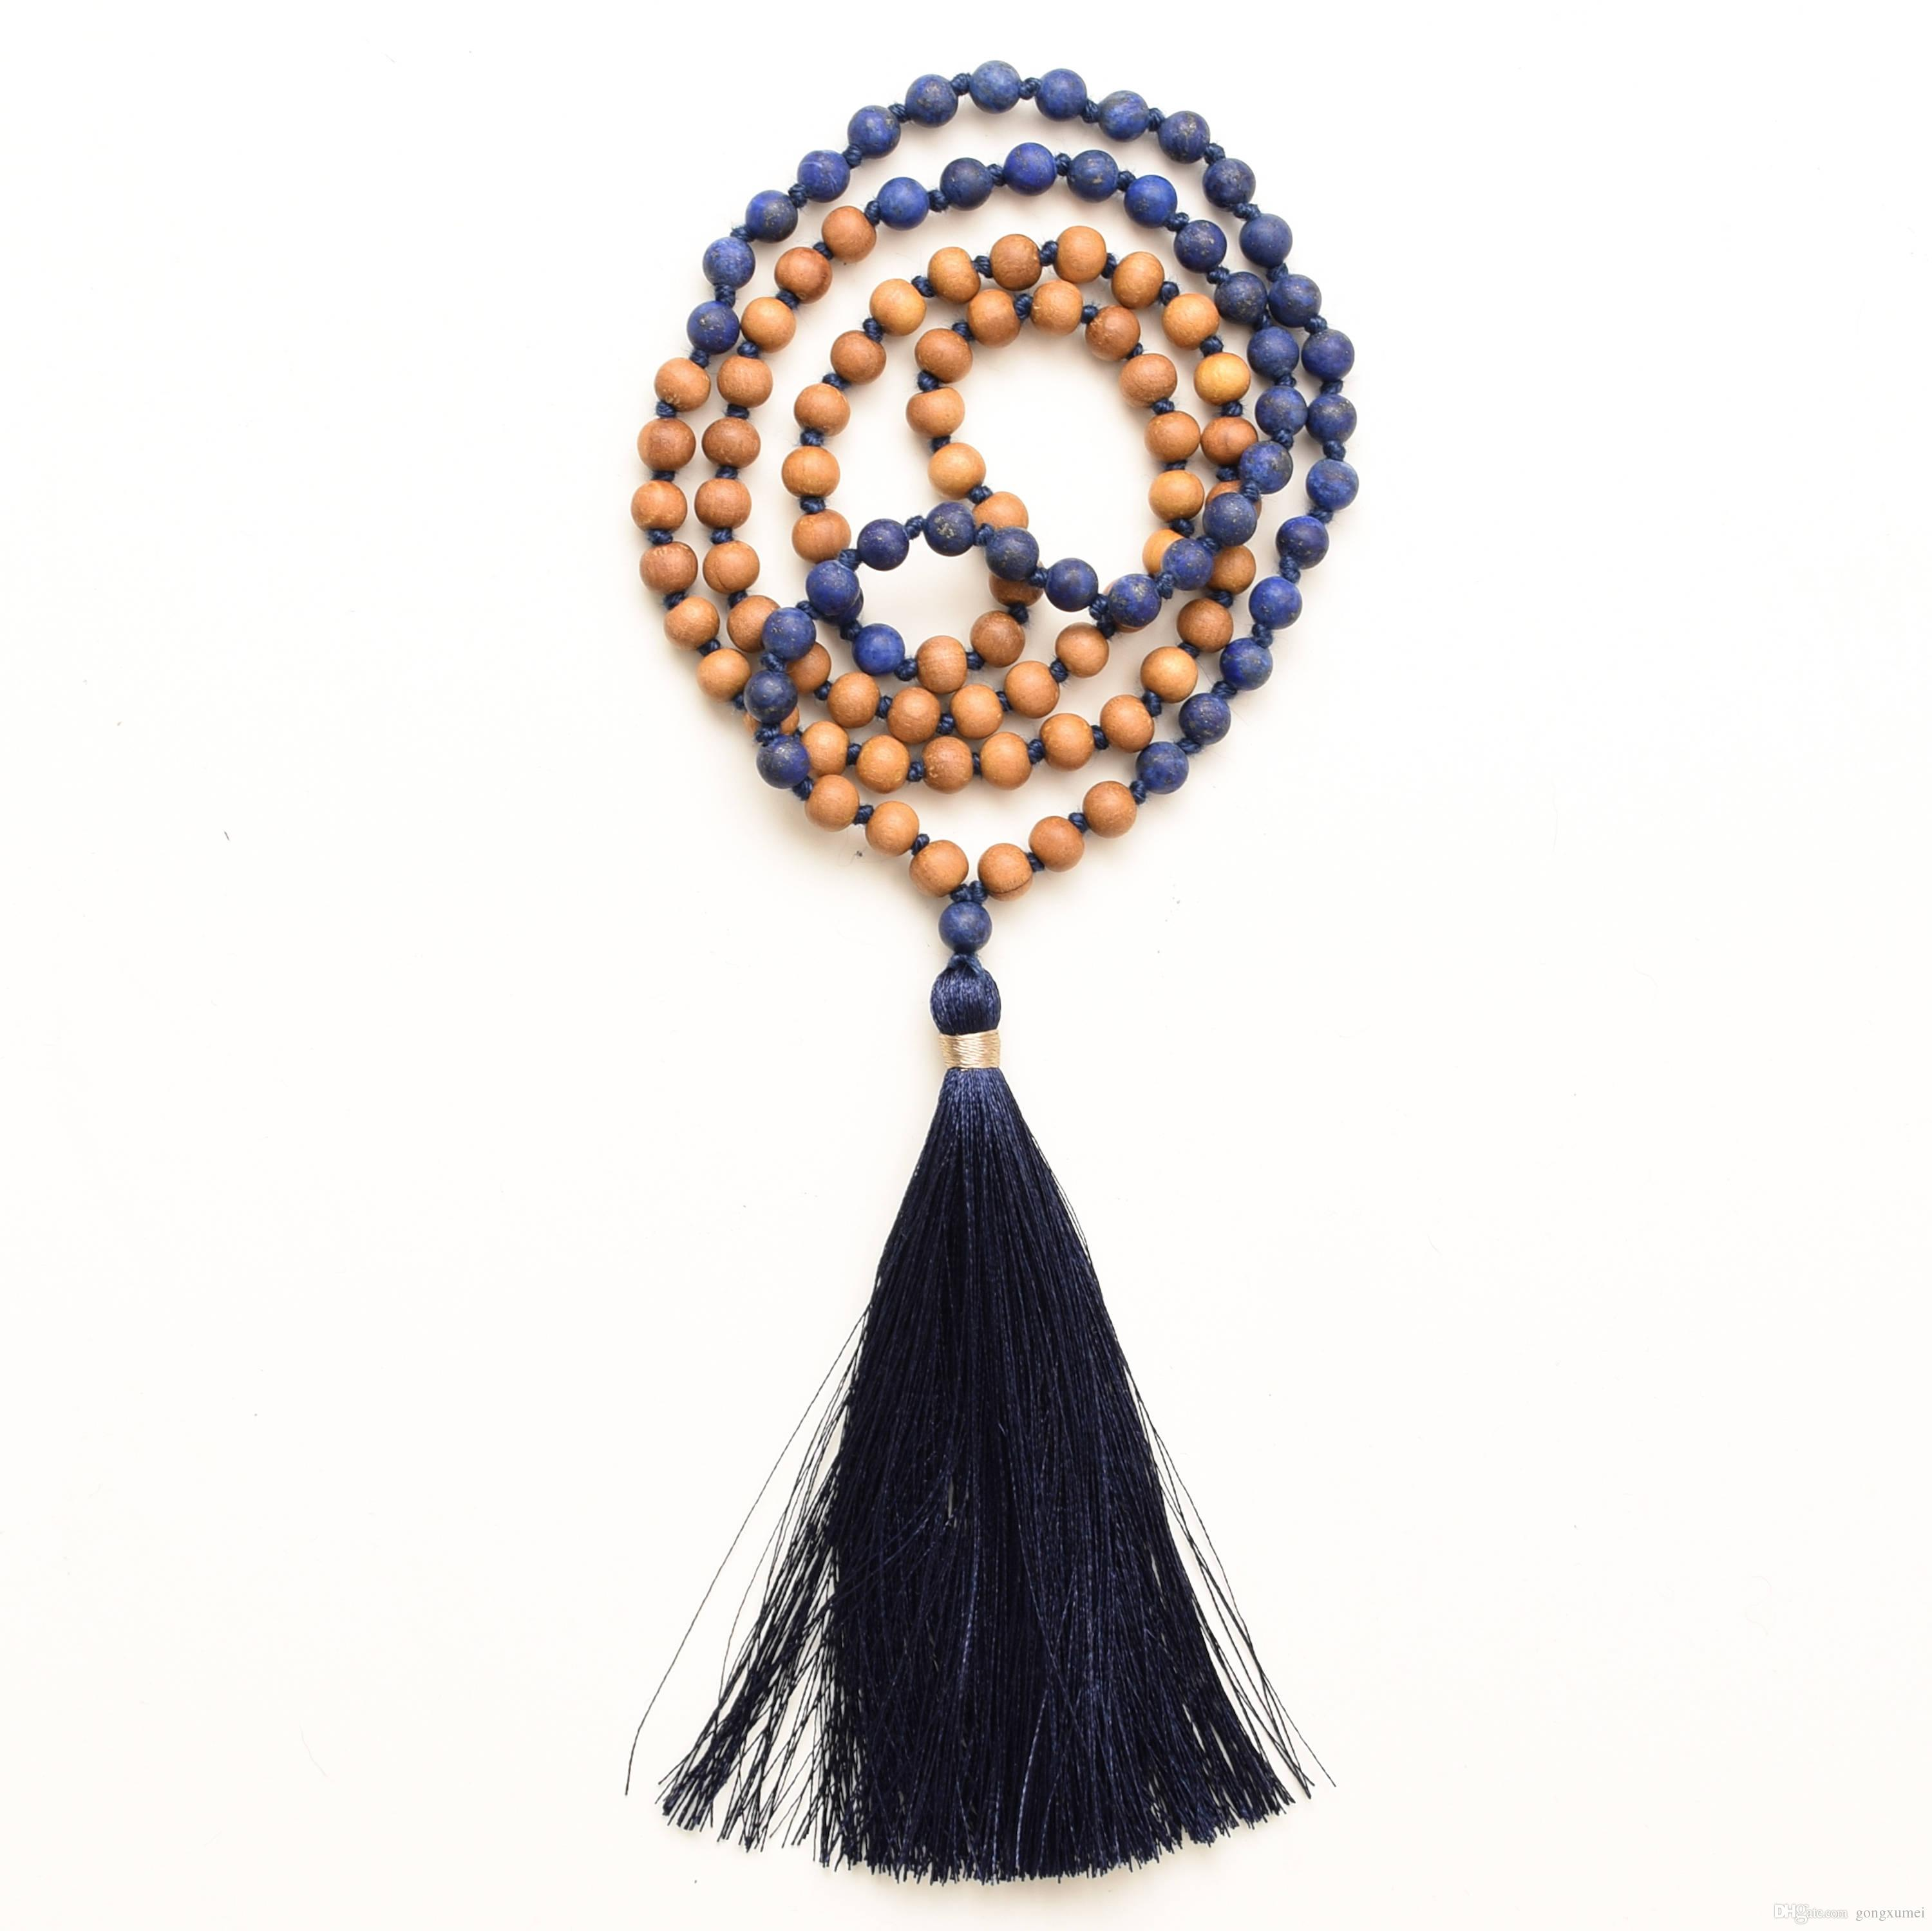 108 Lapis Lazuli Mala Necklace with wood beads Lapis Lazuli Necklace wood beads Mala Necklaces Boho Necklaces Hand Knotted